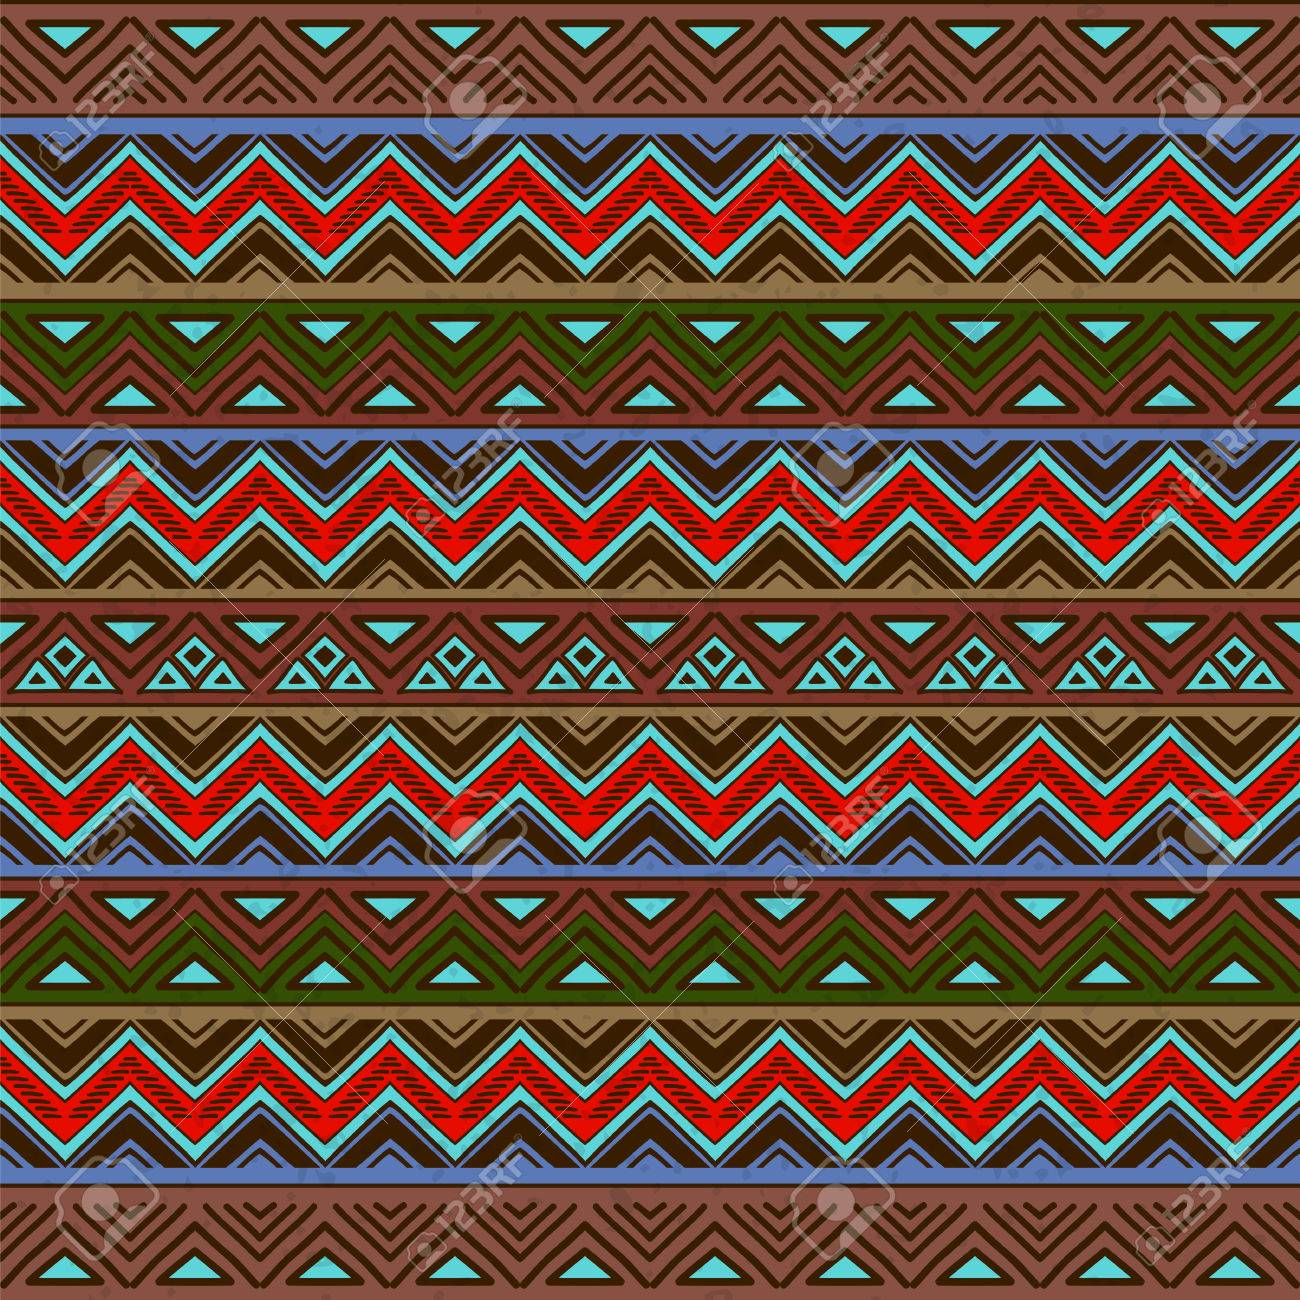 Abstract Seamless Pattern With Ethnic Aztec Ornament Boho Chic